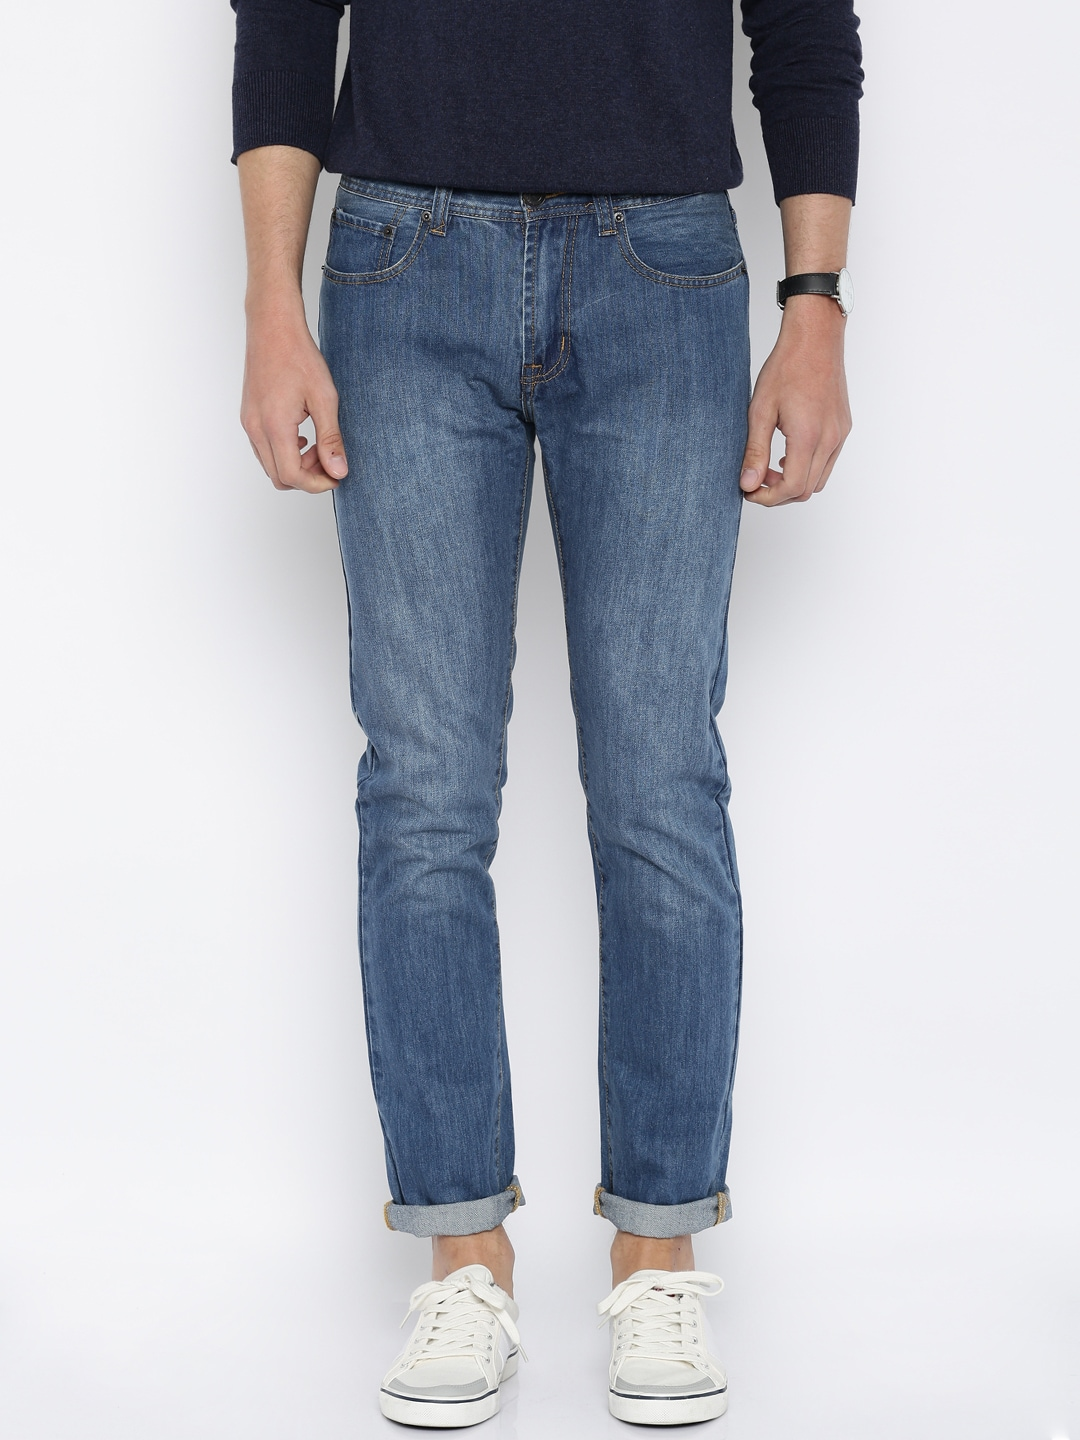 Fox Blue Slim Jeans image